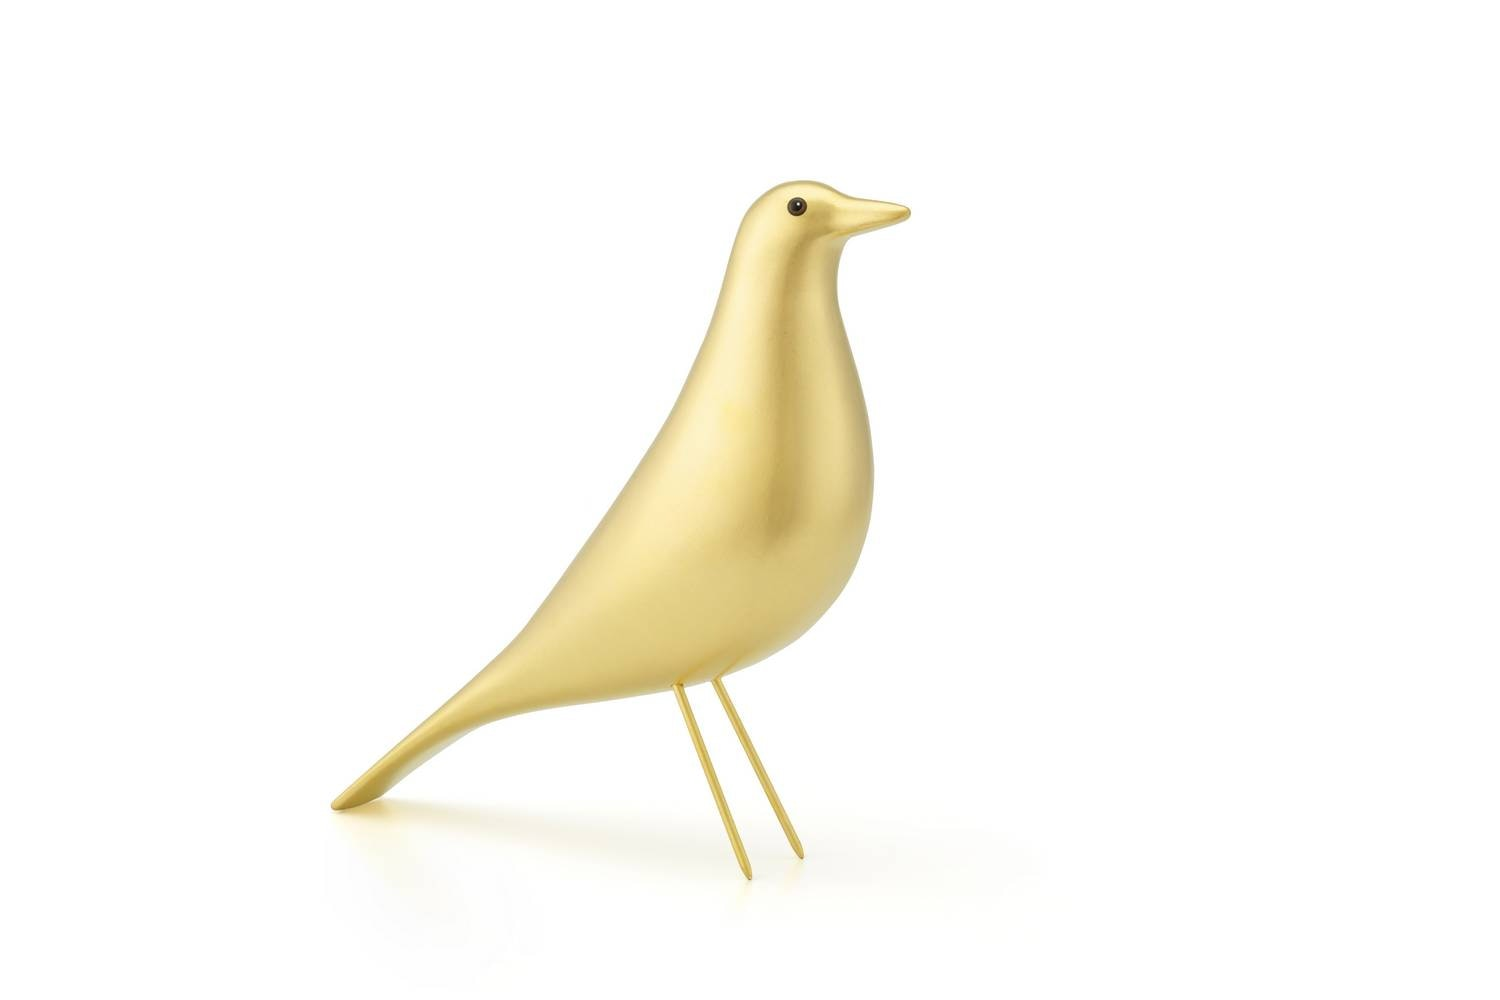 Eames House Bird Gold by Charles & Ray Eames for Vitra